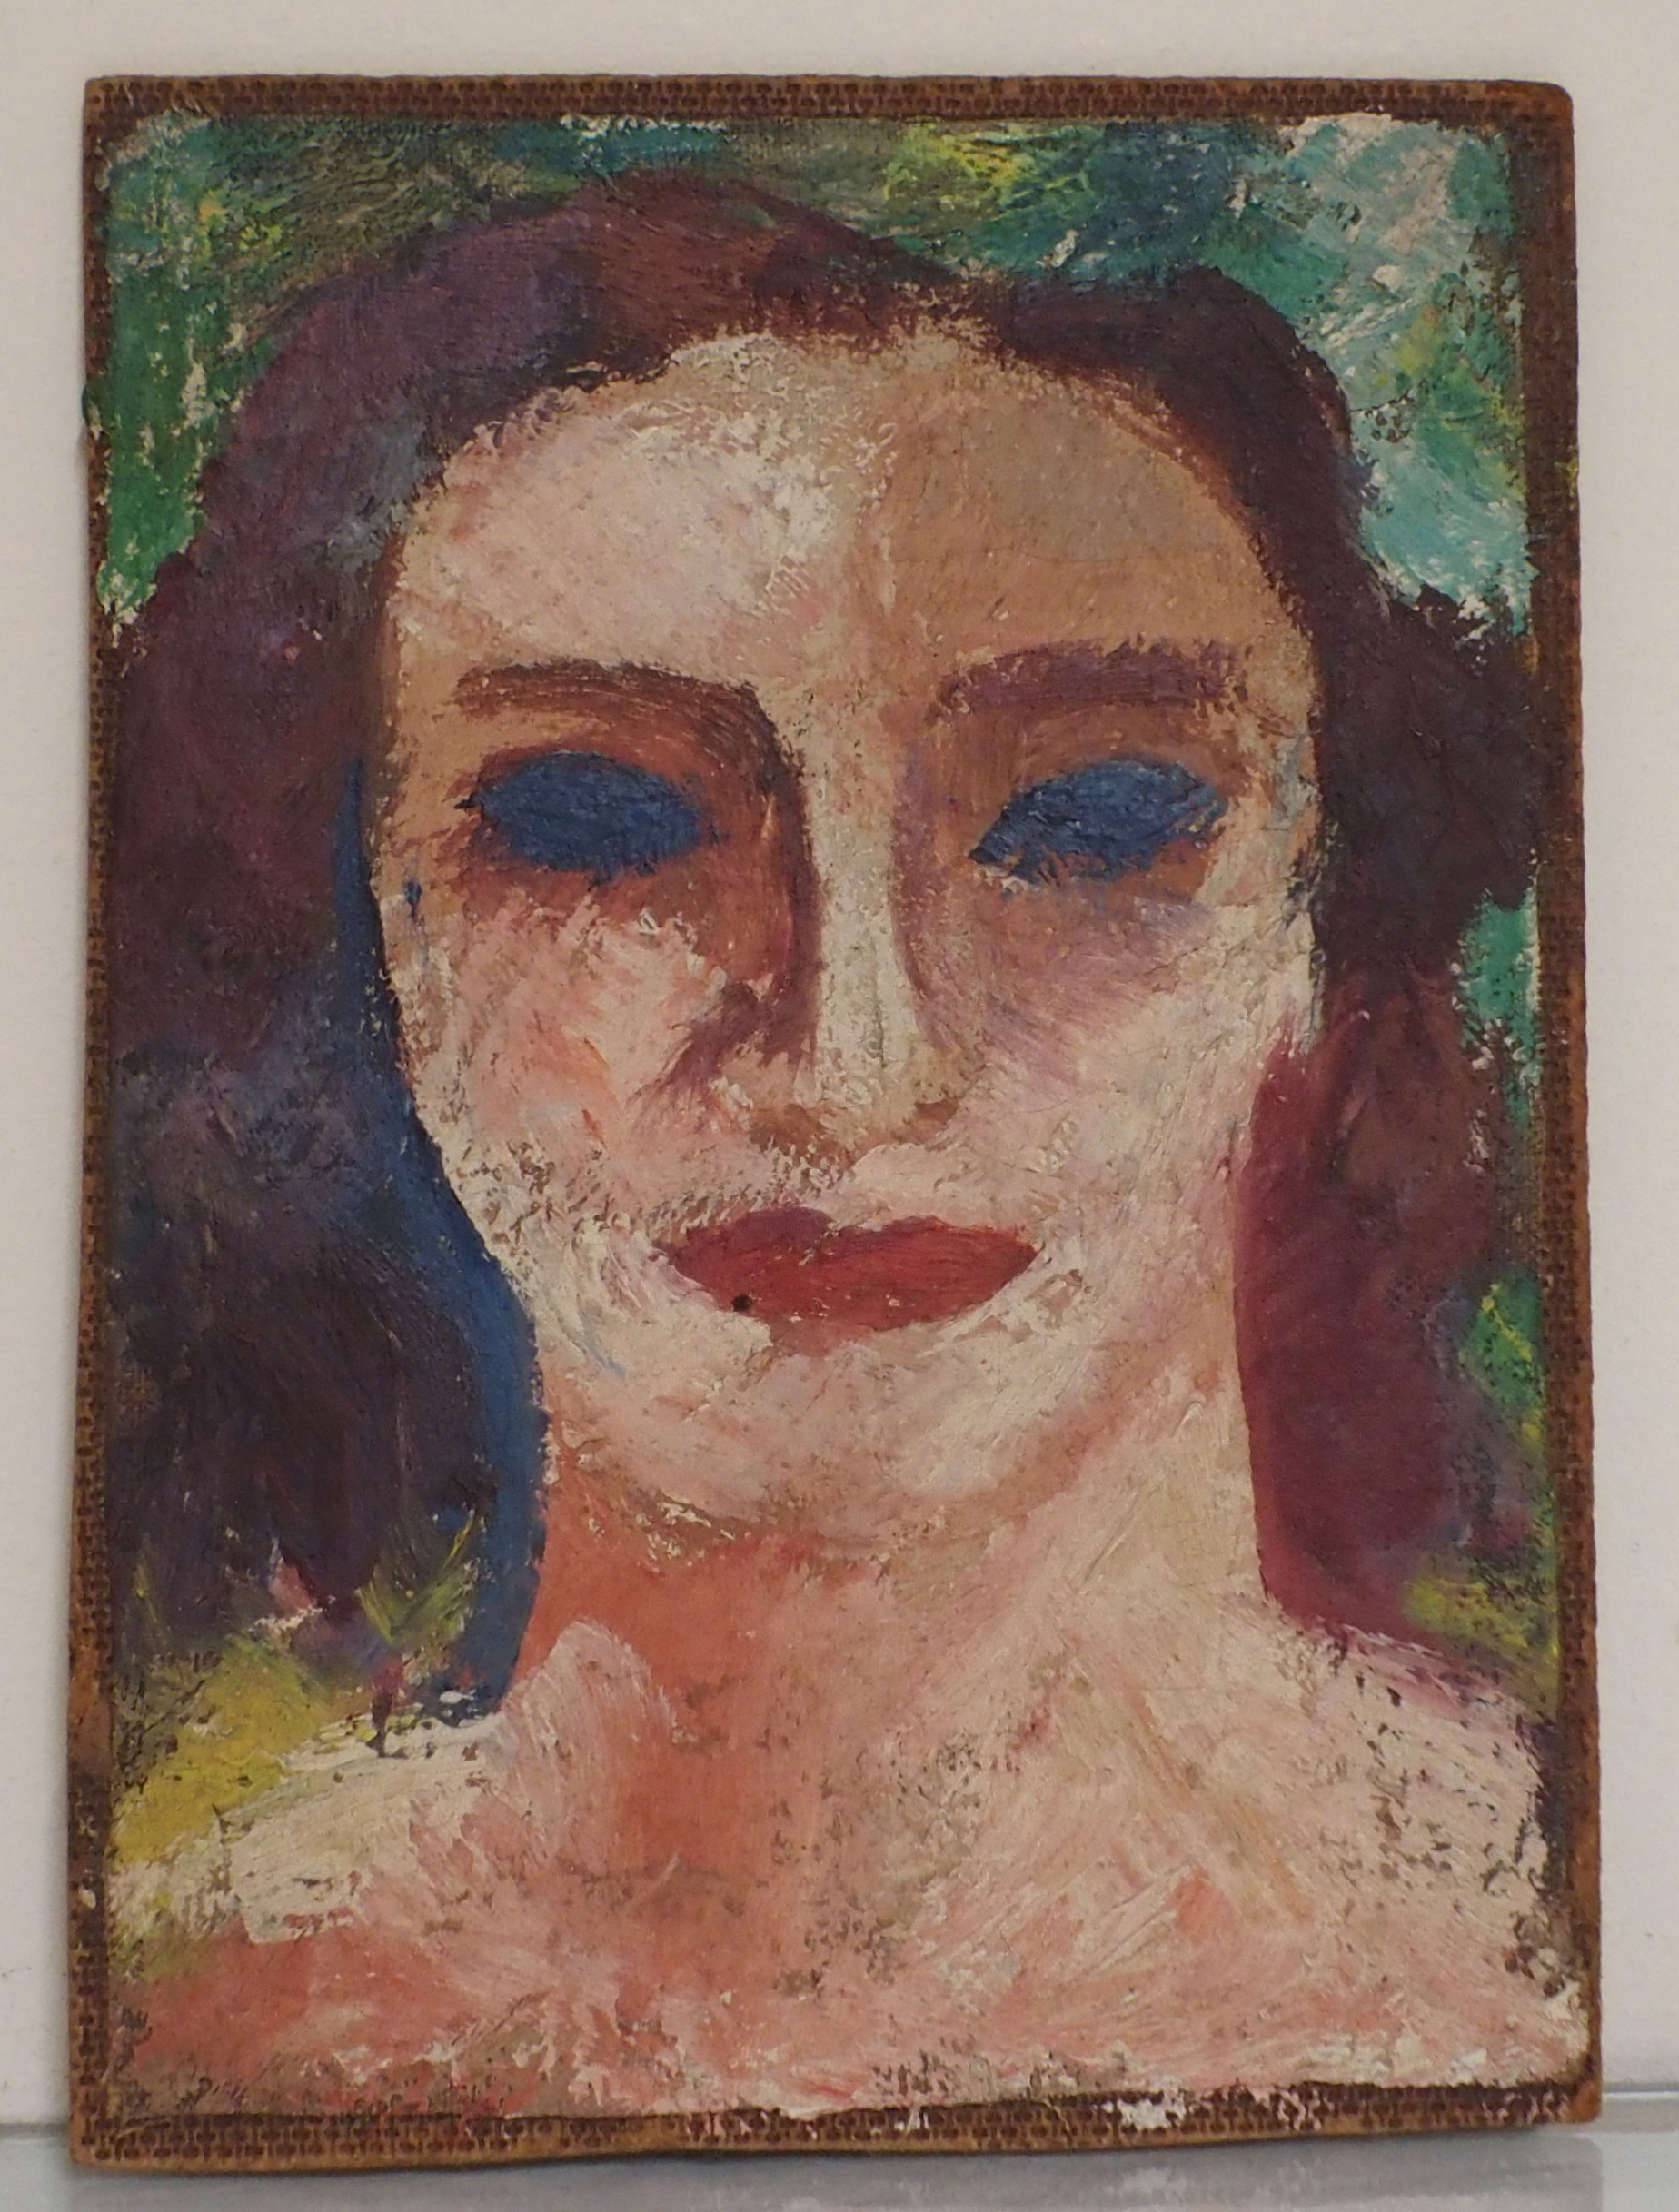 •DONALD BAIN (SCOTTISH 1904-1979) HEAD STUDY oil on canvas laid on panel board, 19.5 x 14cm signed - Image 3 of 5